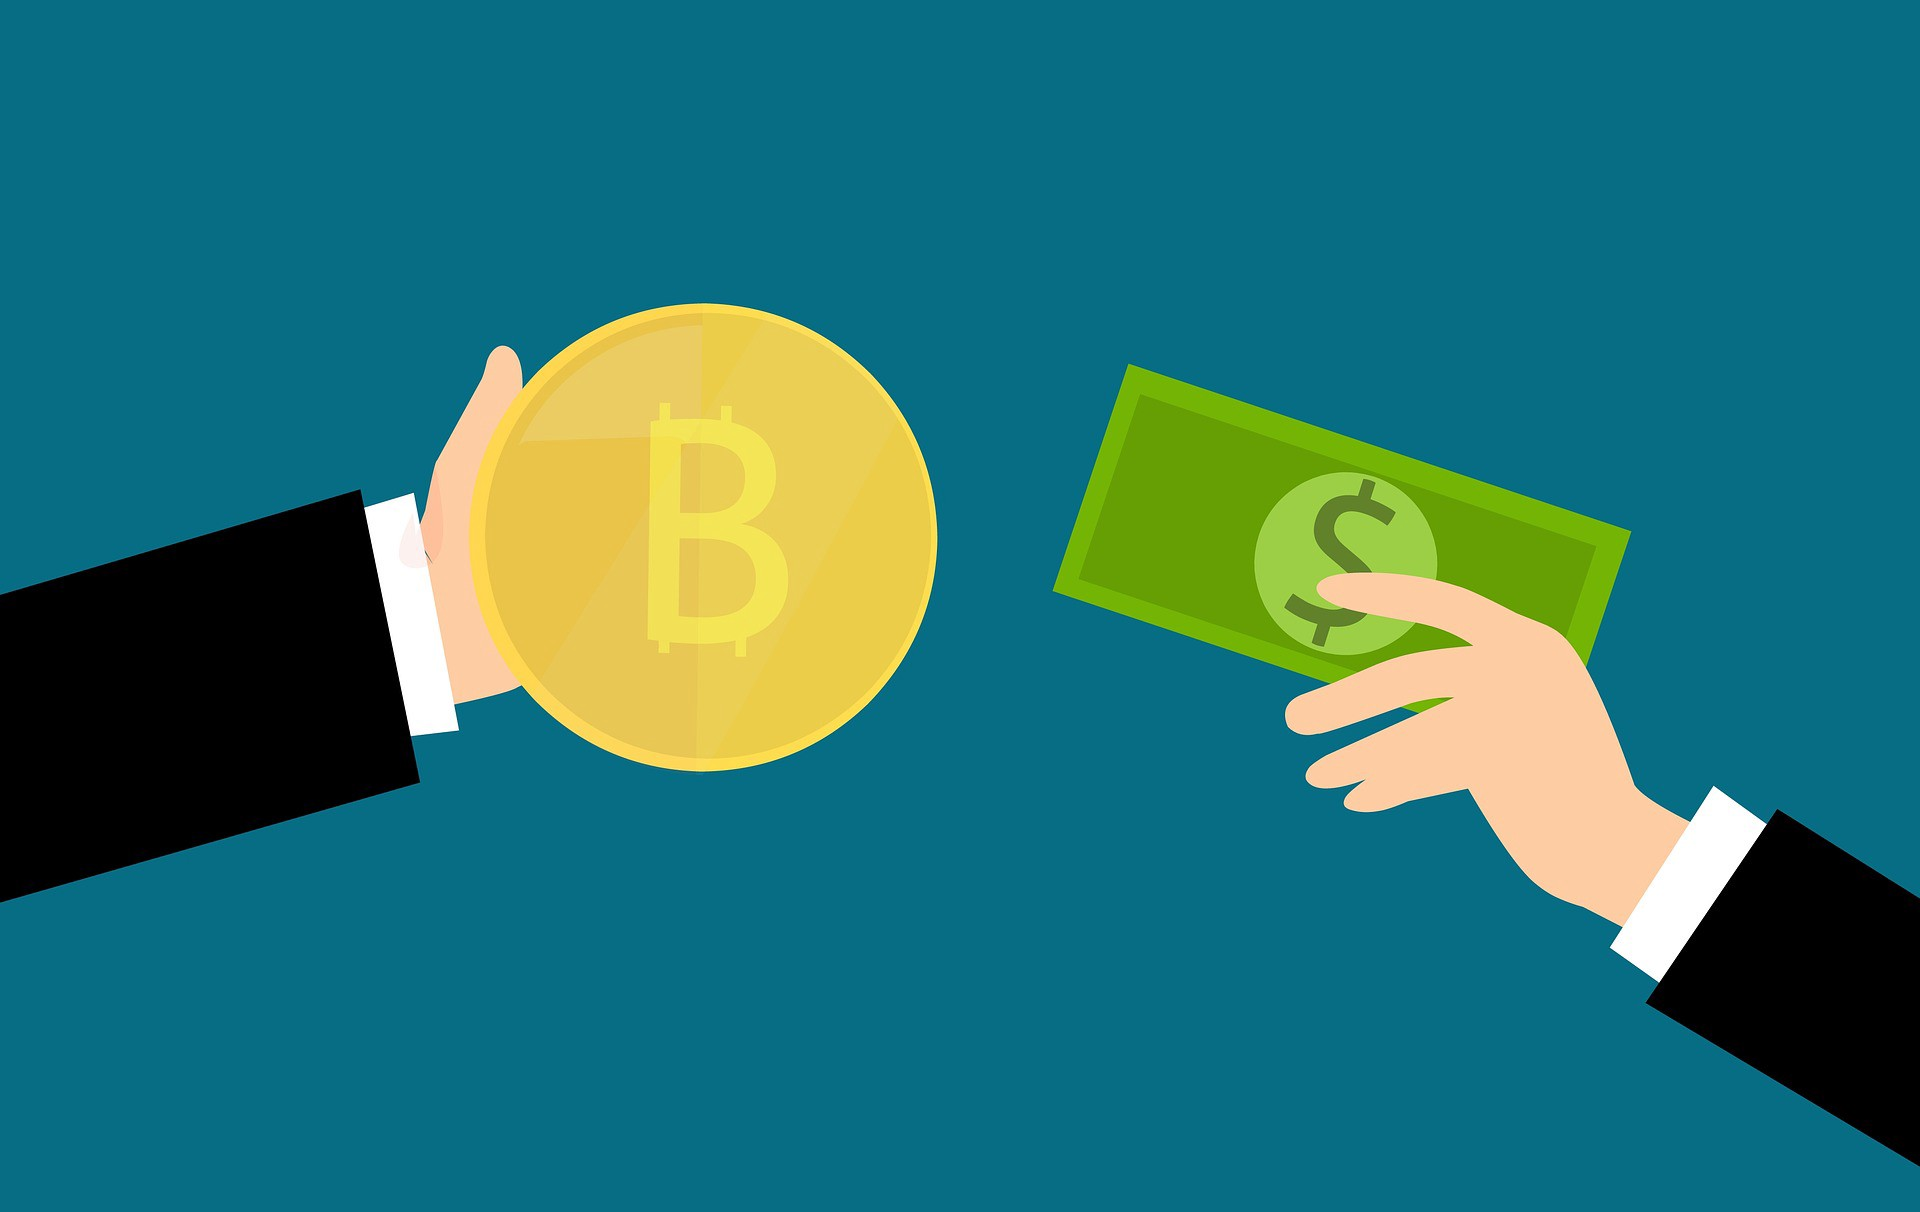 buy and sell bitcoins on different exchanges with different